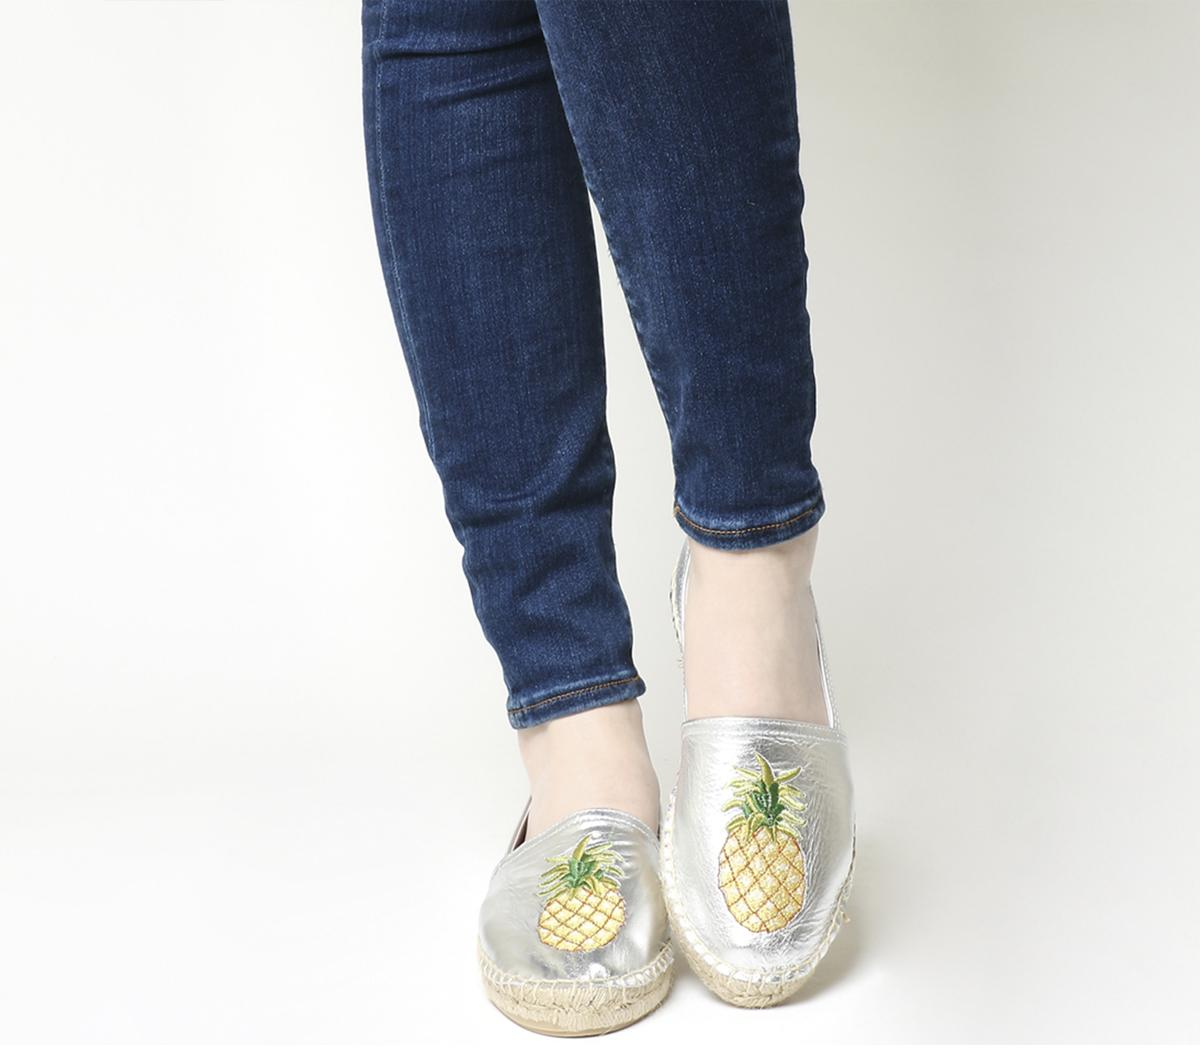 Forestry Embroidered Espadrilles